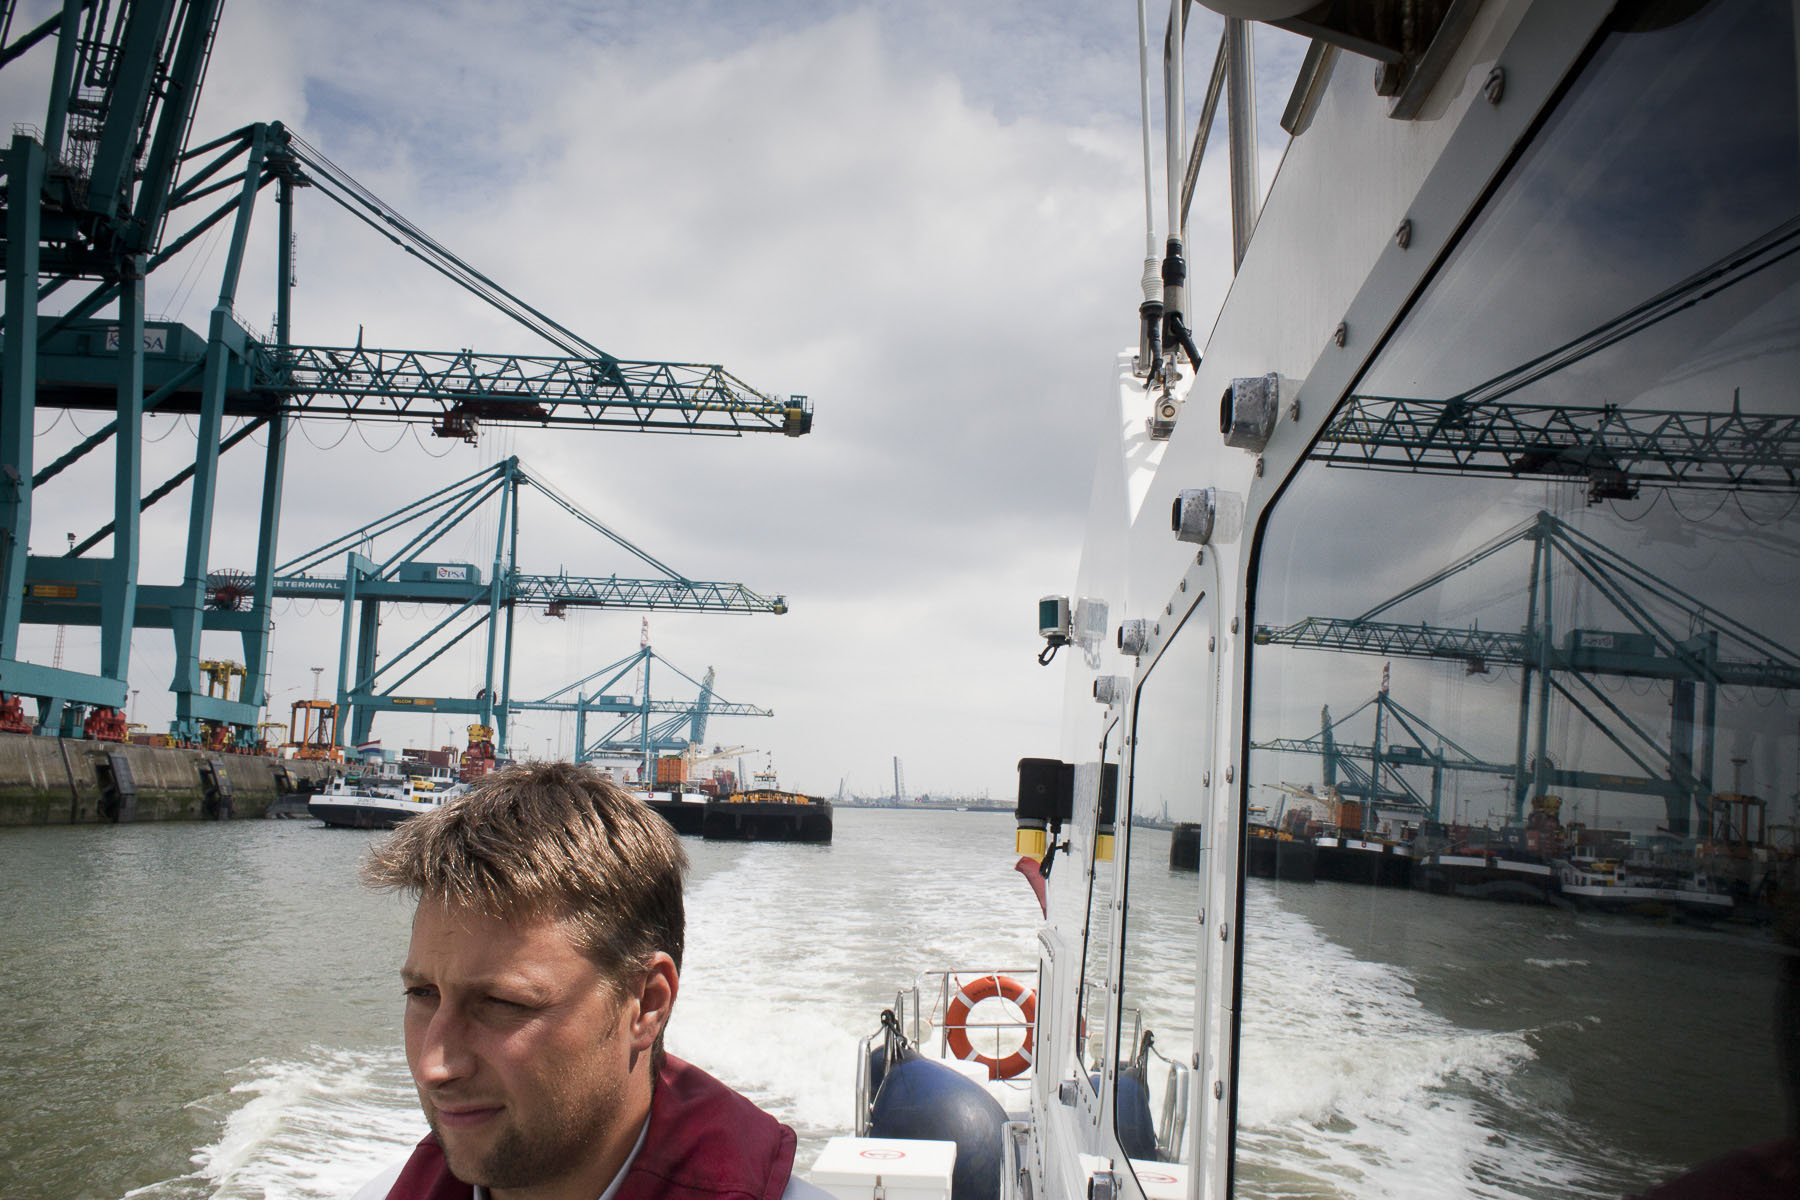 Aboard the sea police patrol boat in the Deurganckdok, a dock on the left bank of the Scheldt in July 2010